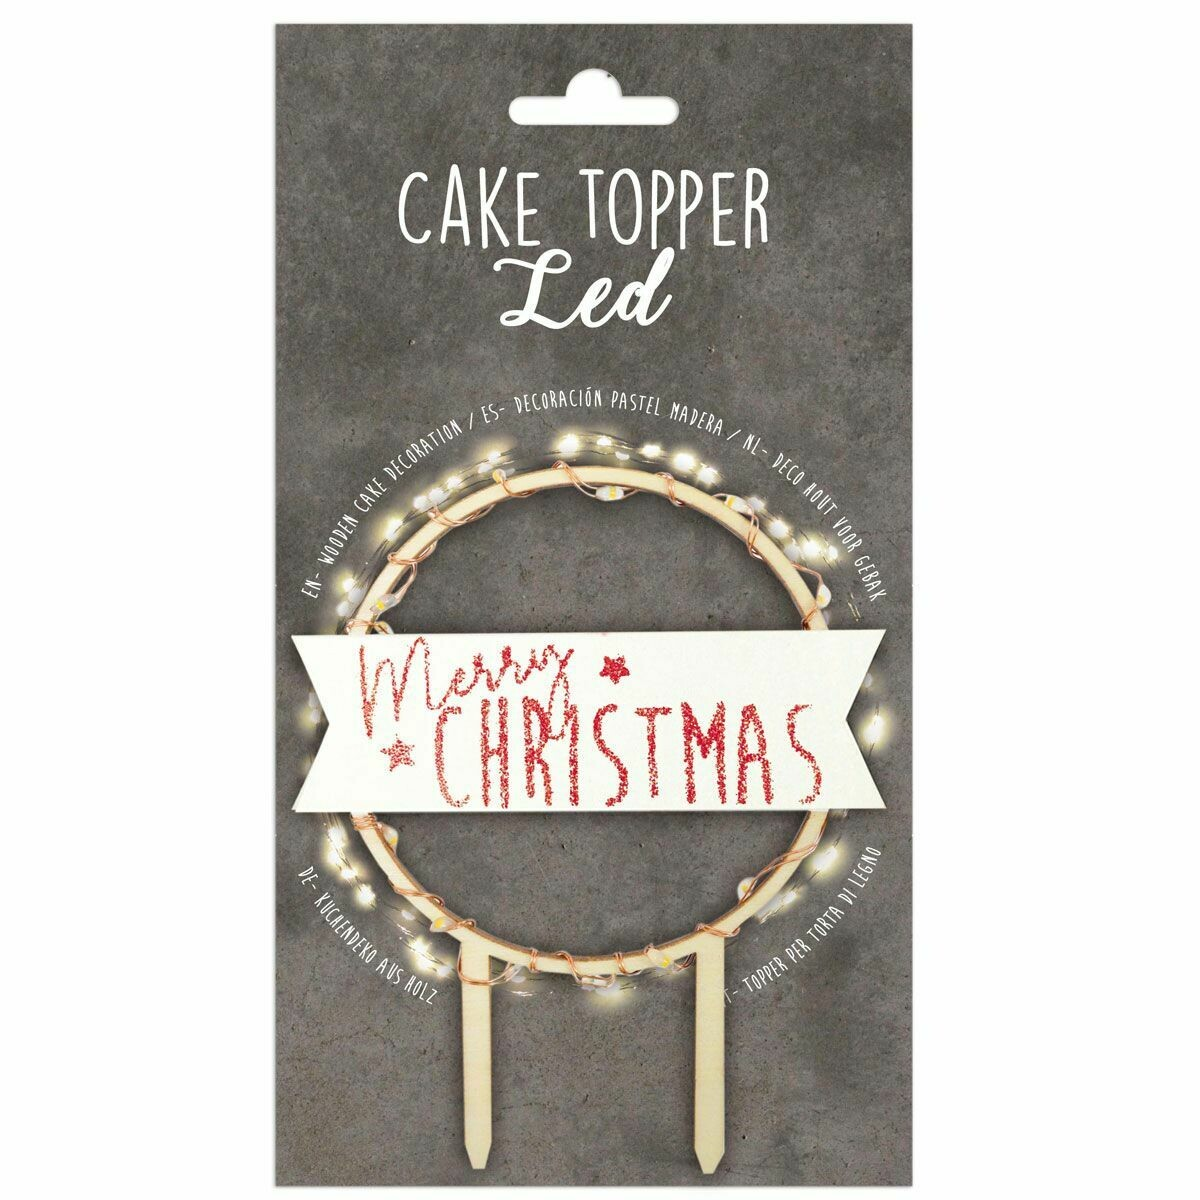 Scrapcooking Cake Topper LED 'Merry Christmas' - Τόπερ με φωτάκια Led 'Merry Christmas'